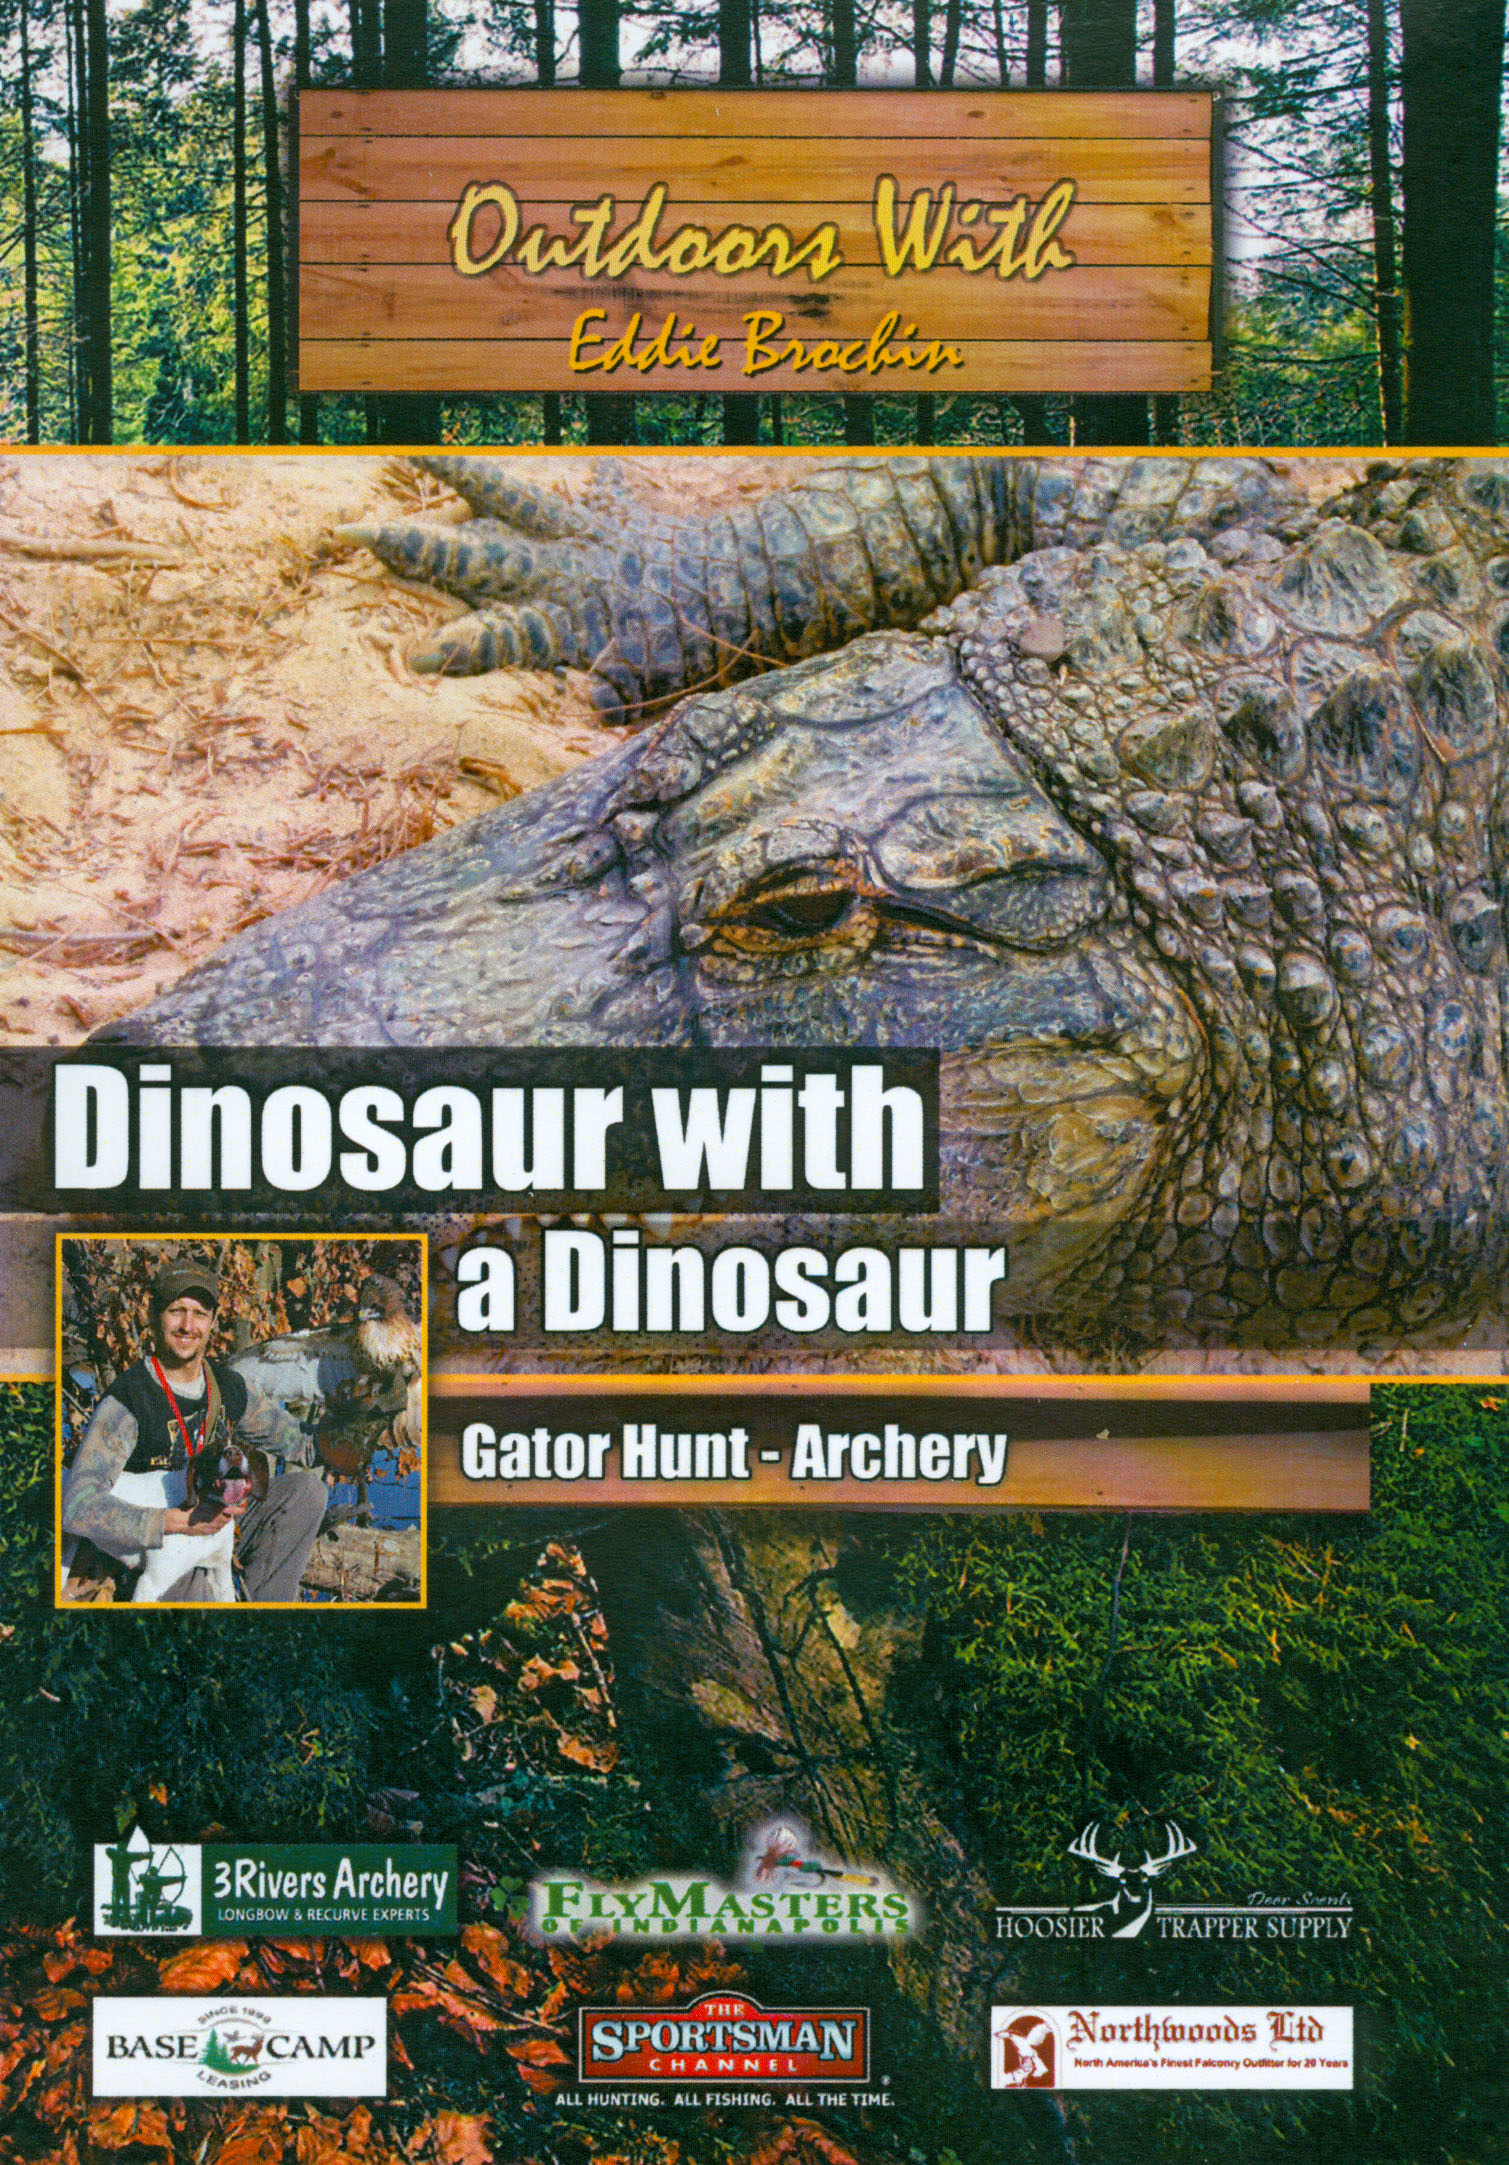 Outdoors With Eddie Brochin: Dinosaur With a Dinosaur